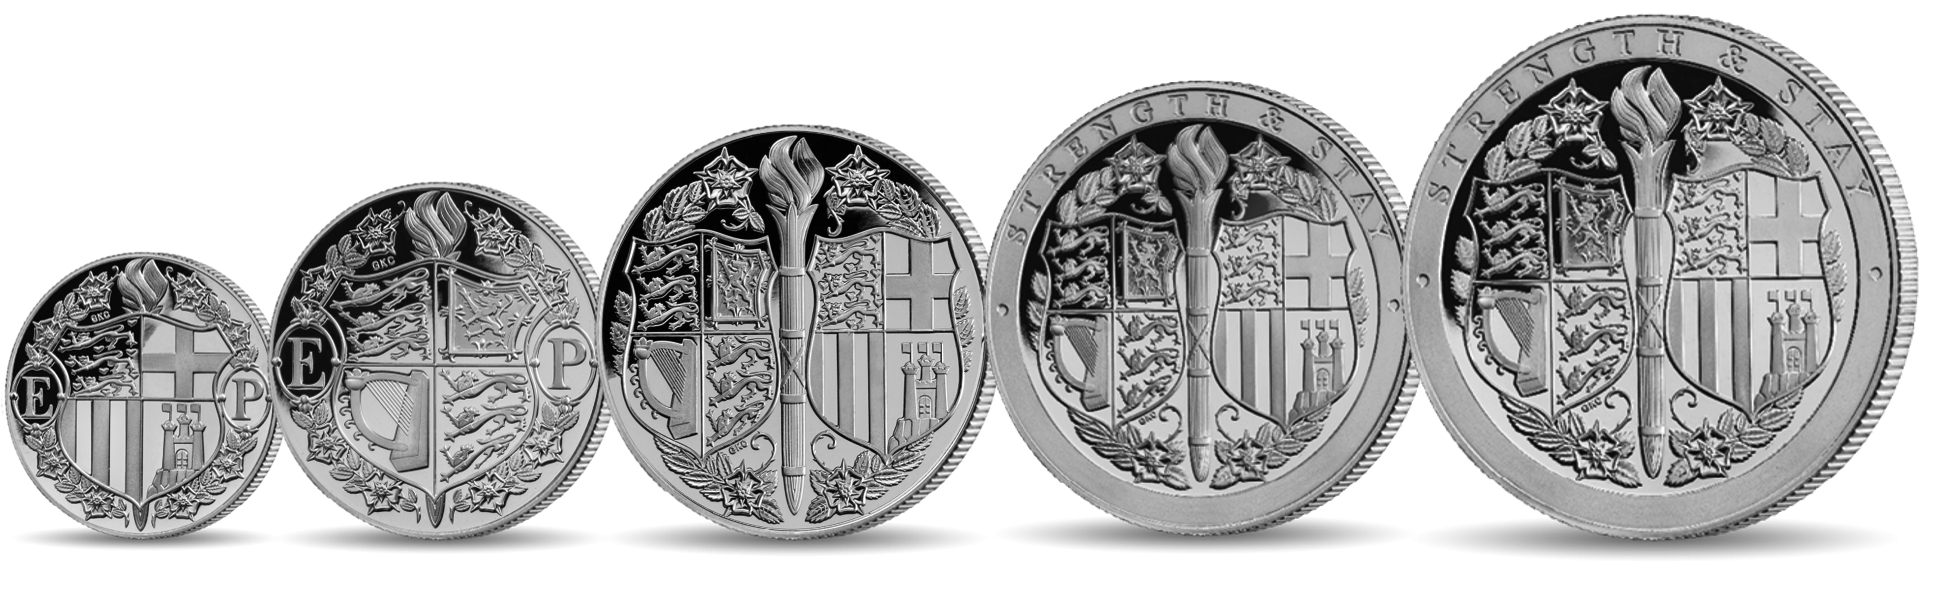 5 coin set starting from a quarter sovereign up to a quintuple sovereign. All coins feature the coat of arms encircled by a garland of roses. The letters 'E' and 'P' appear in the 9 o'clock and 3 o'clock positions respectively throughout the set.